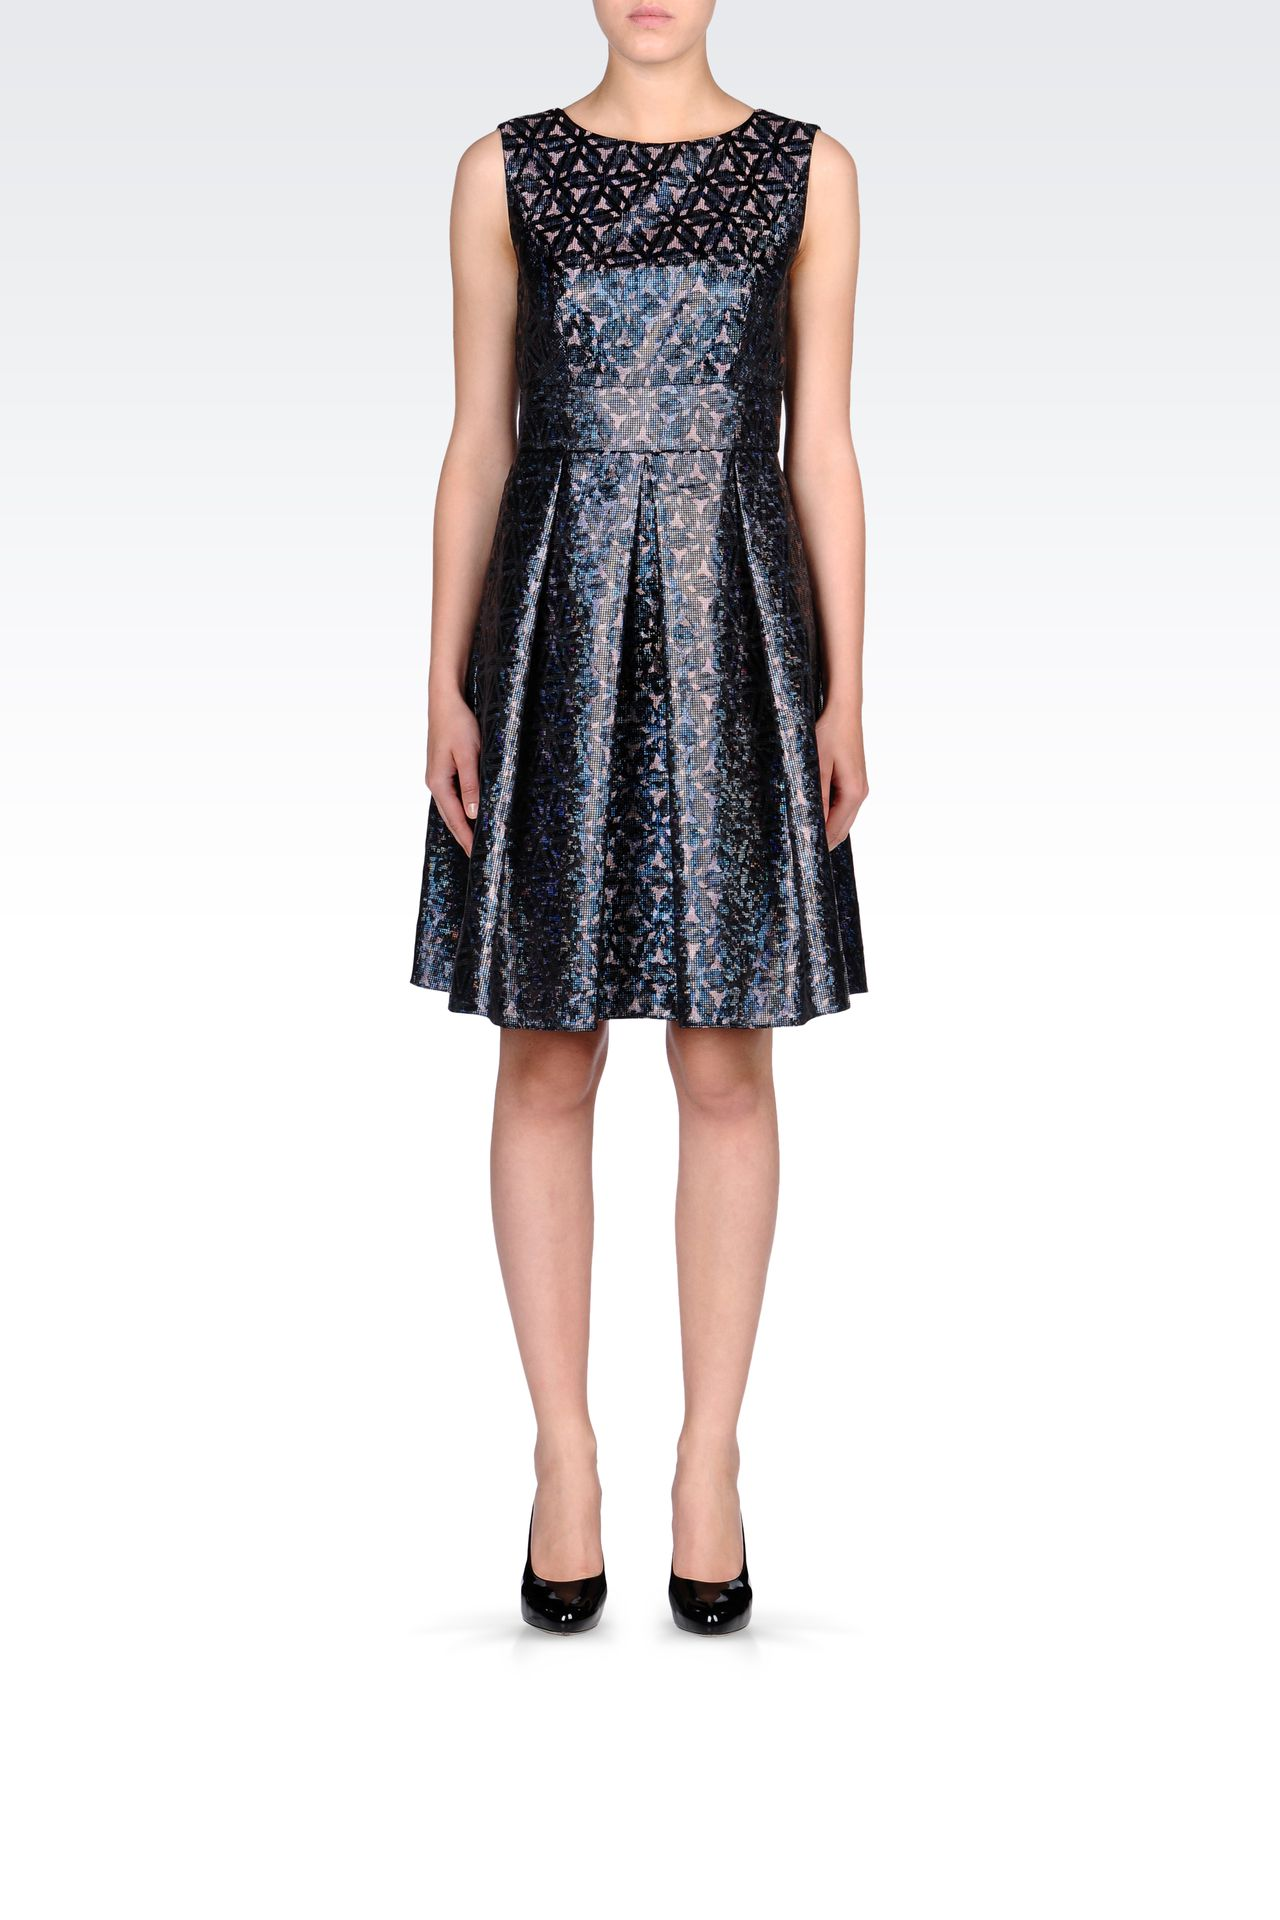 OPTICAL-PRINT LAMÉ DRESS: Short Dresses Women by Armani - 0